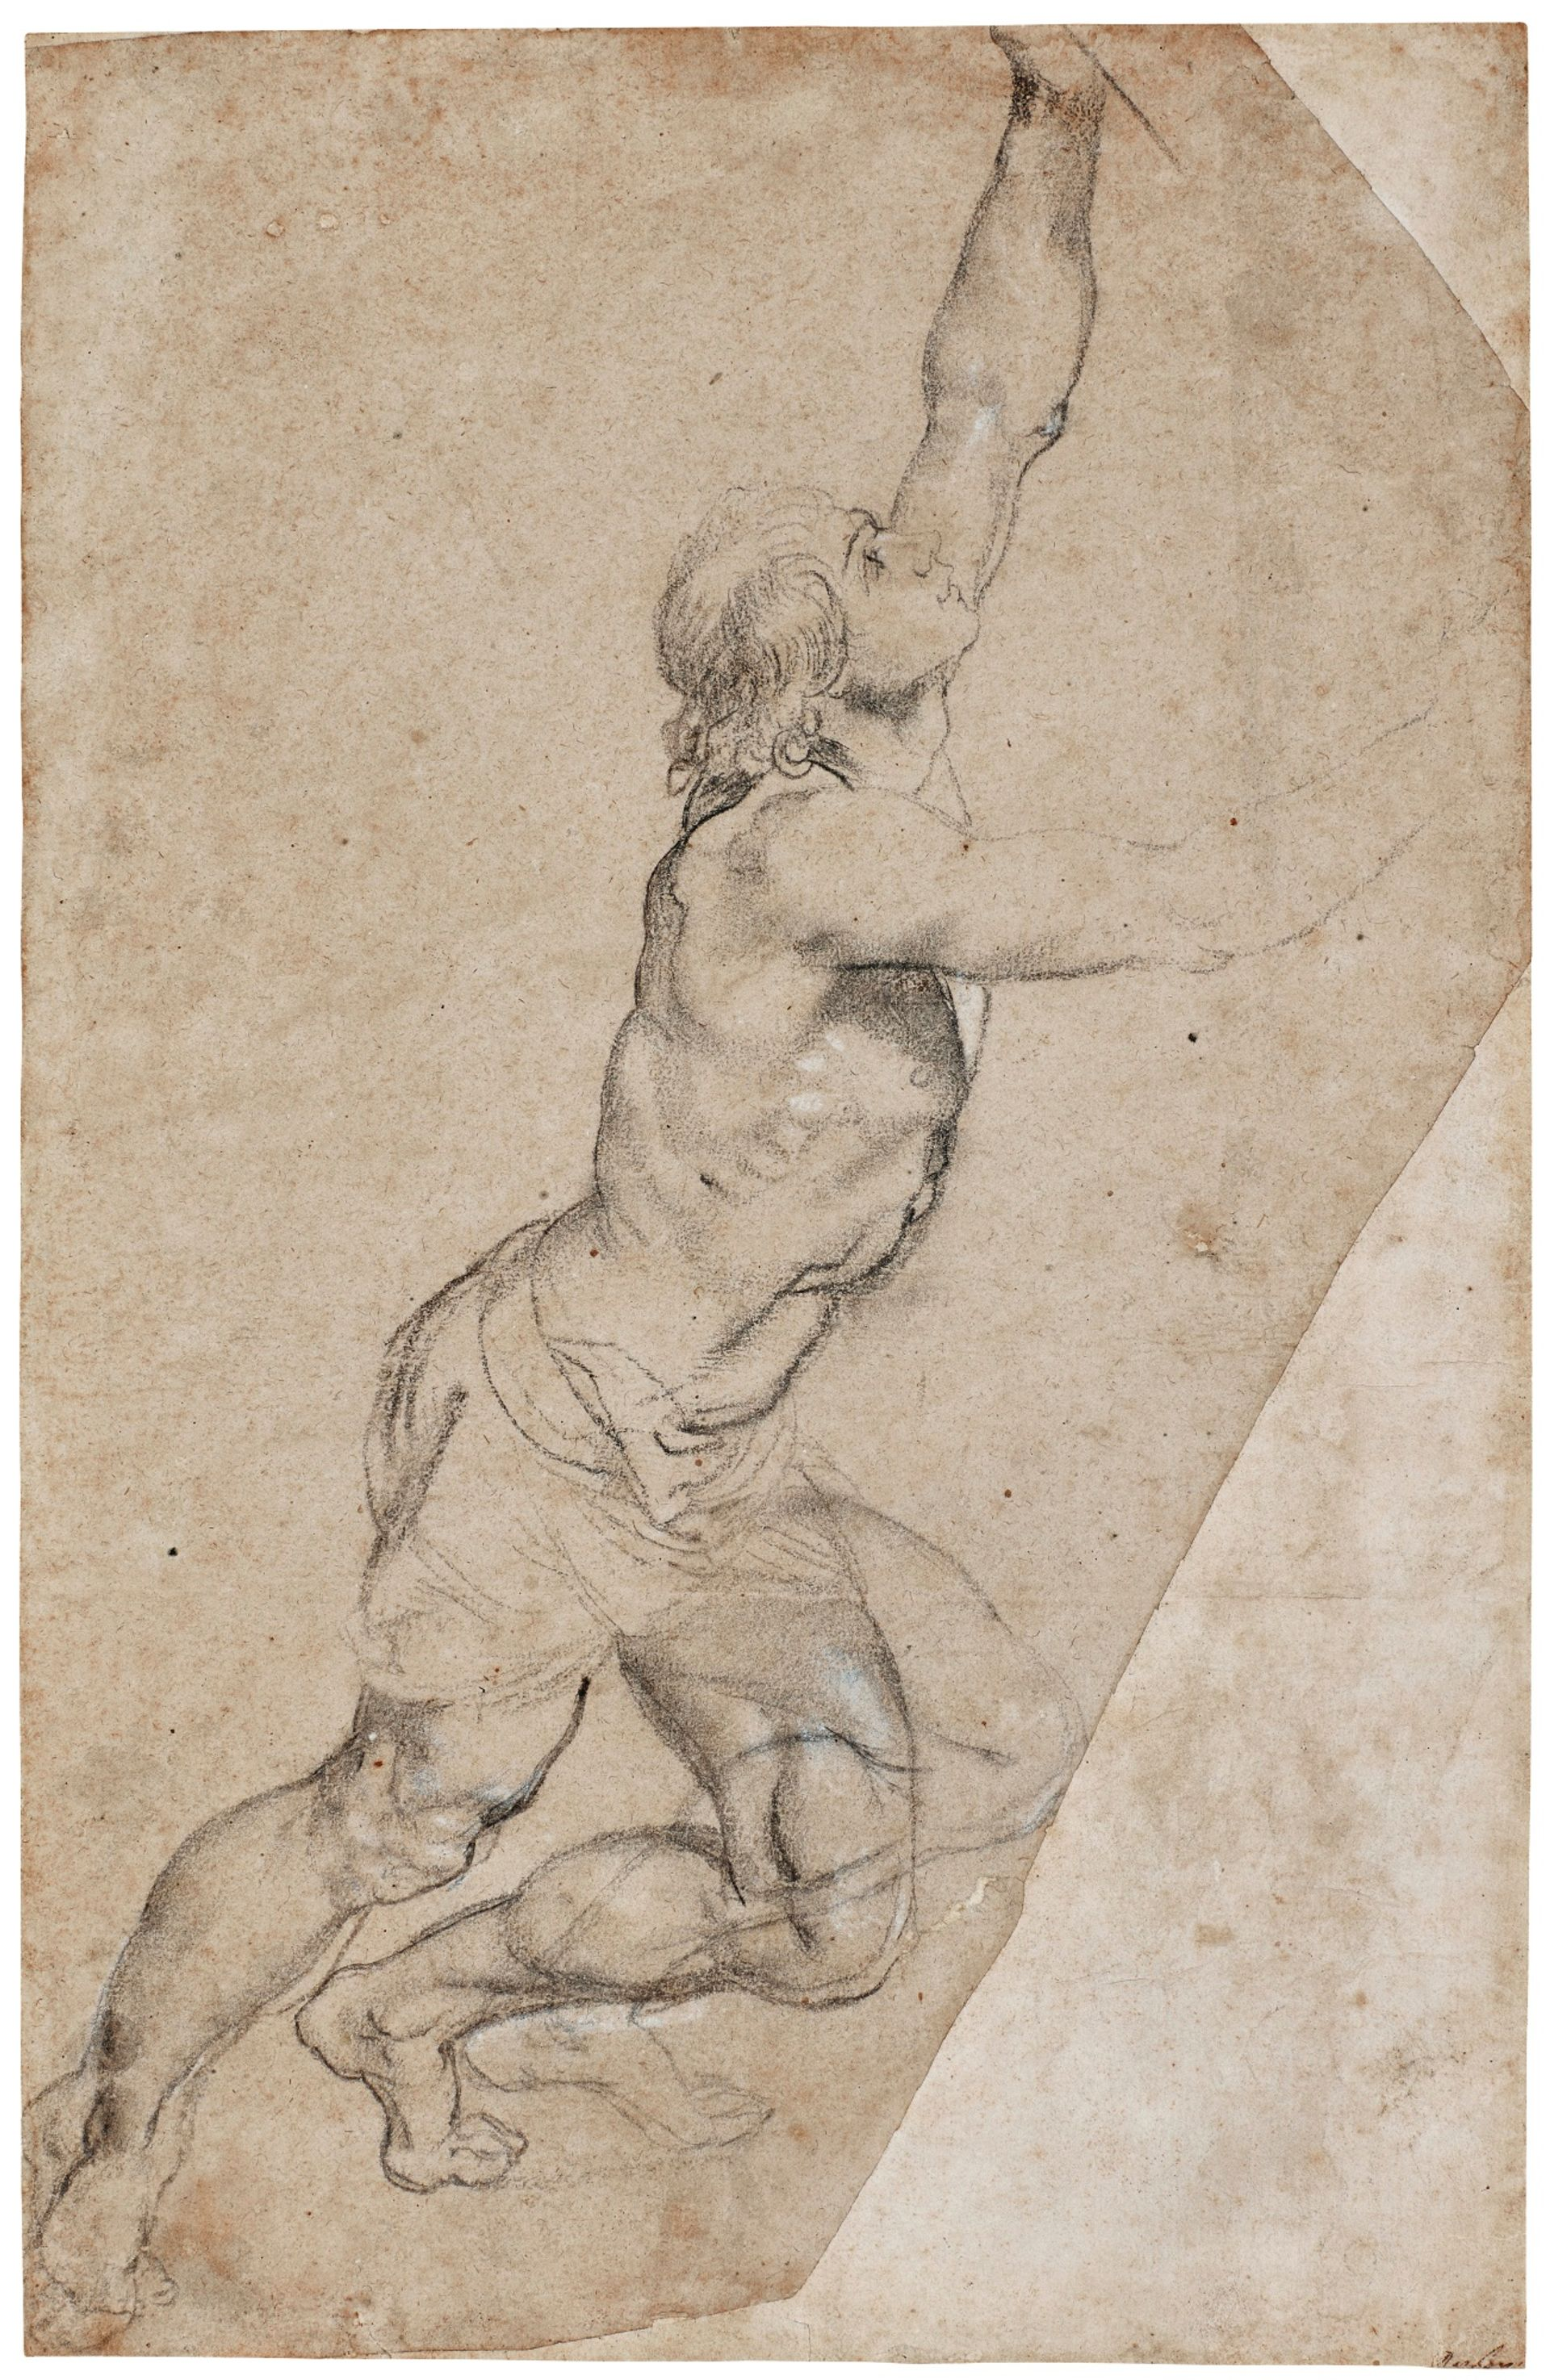 Peter Paul Rubens, Nude Study of a Young Man With Raised Arms © Sotheby's